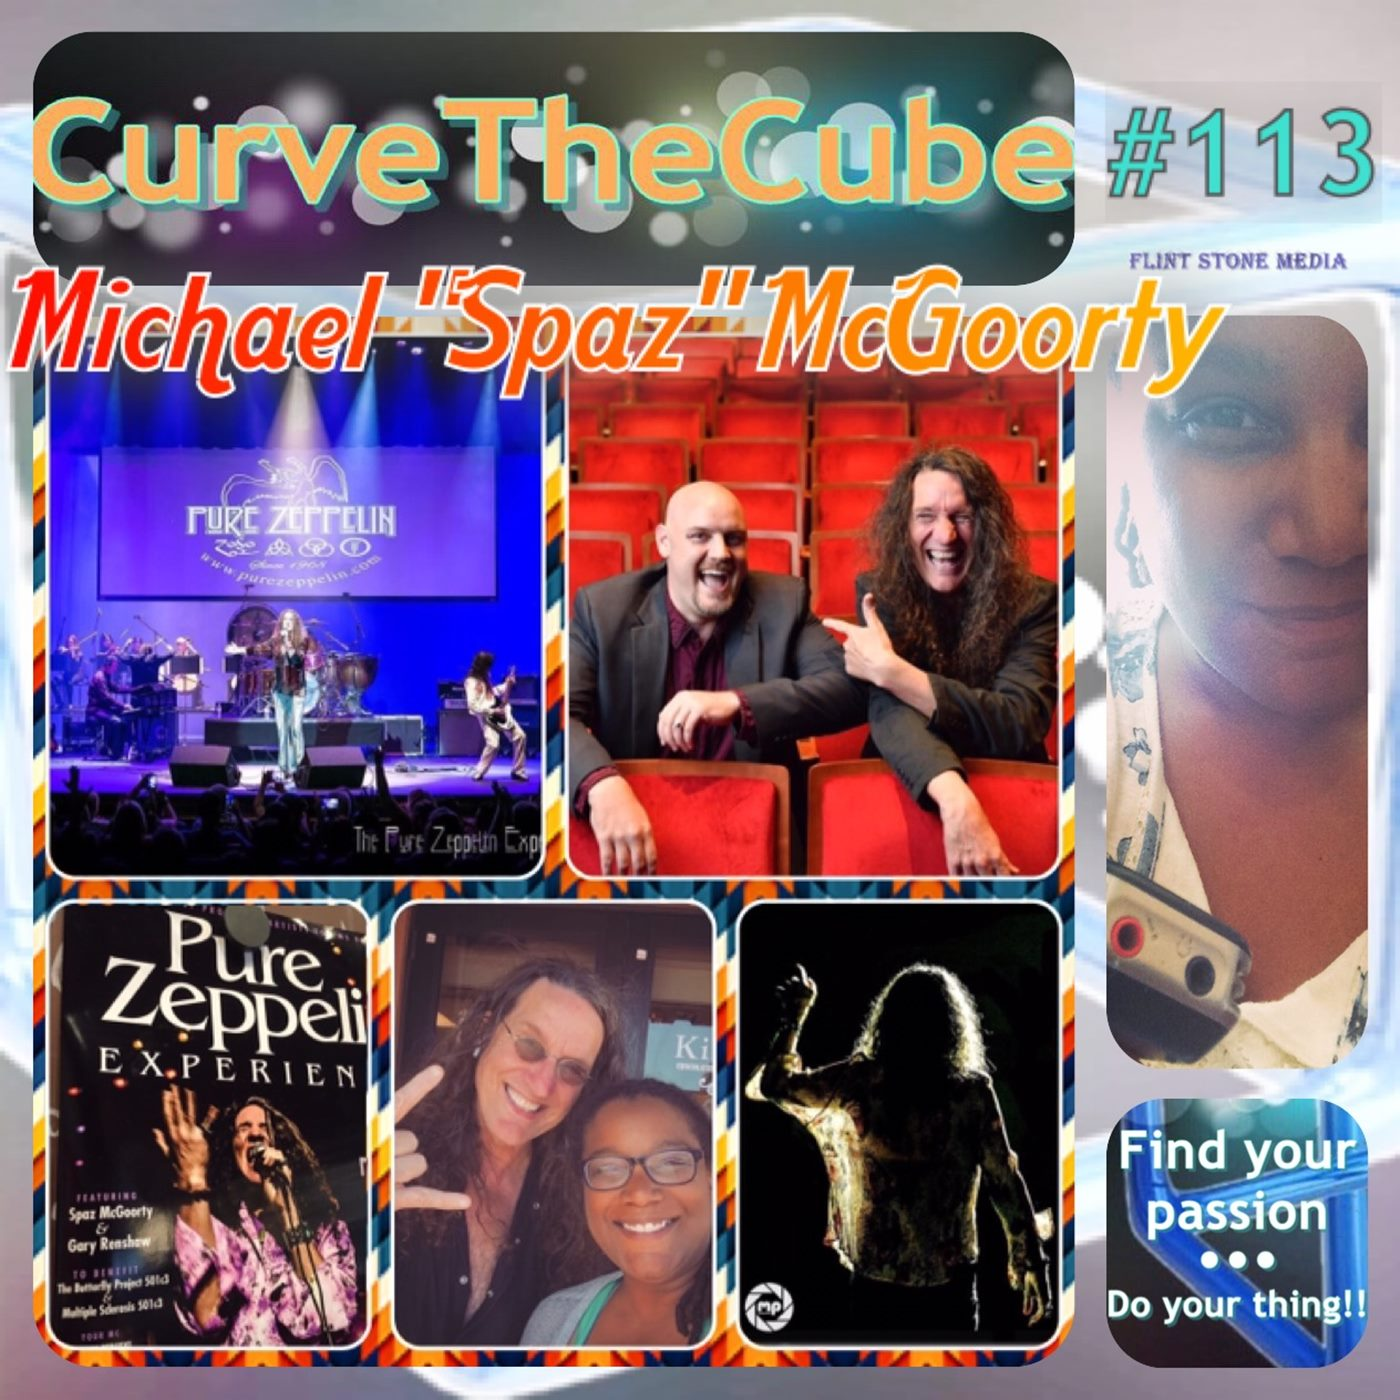 Entertainer Michael 'Spaz' McGoorty of the Pure Zeppelin Experience on the Curve the Cube Podcast